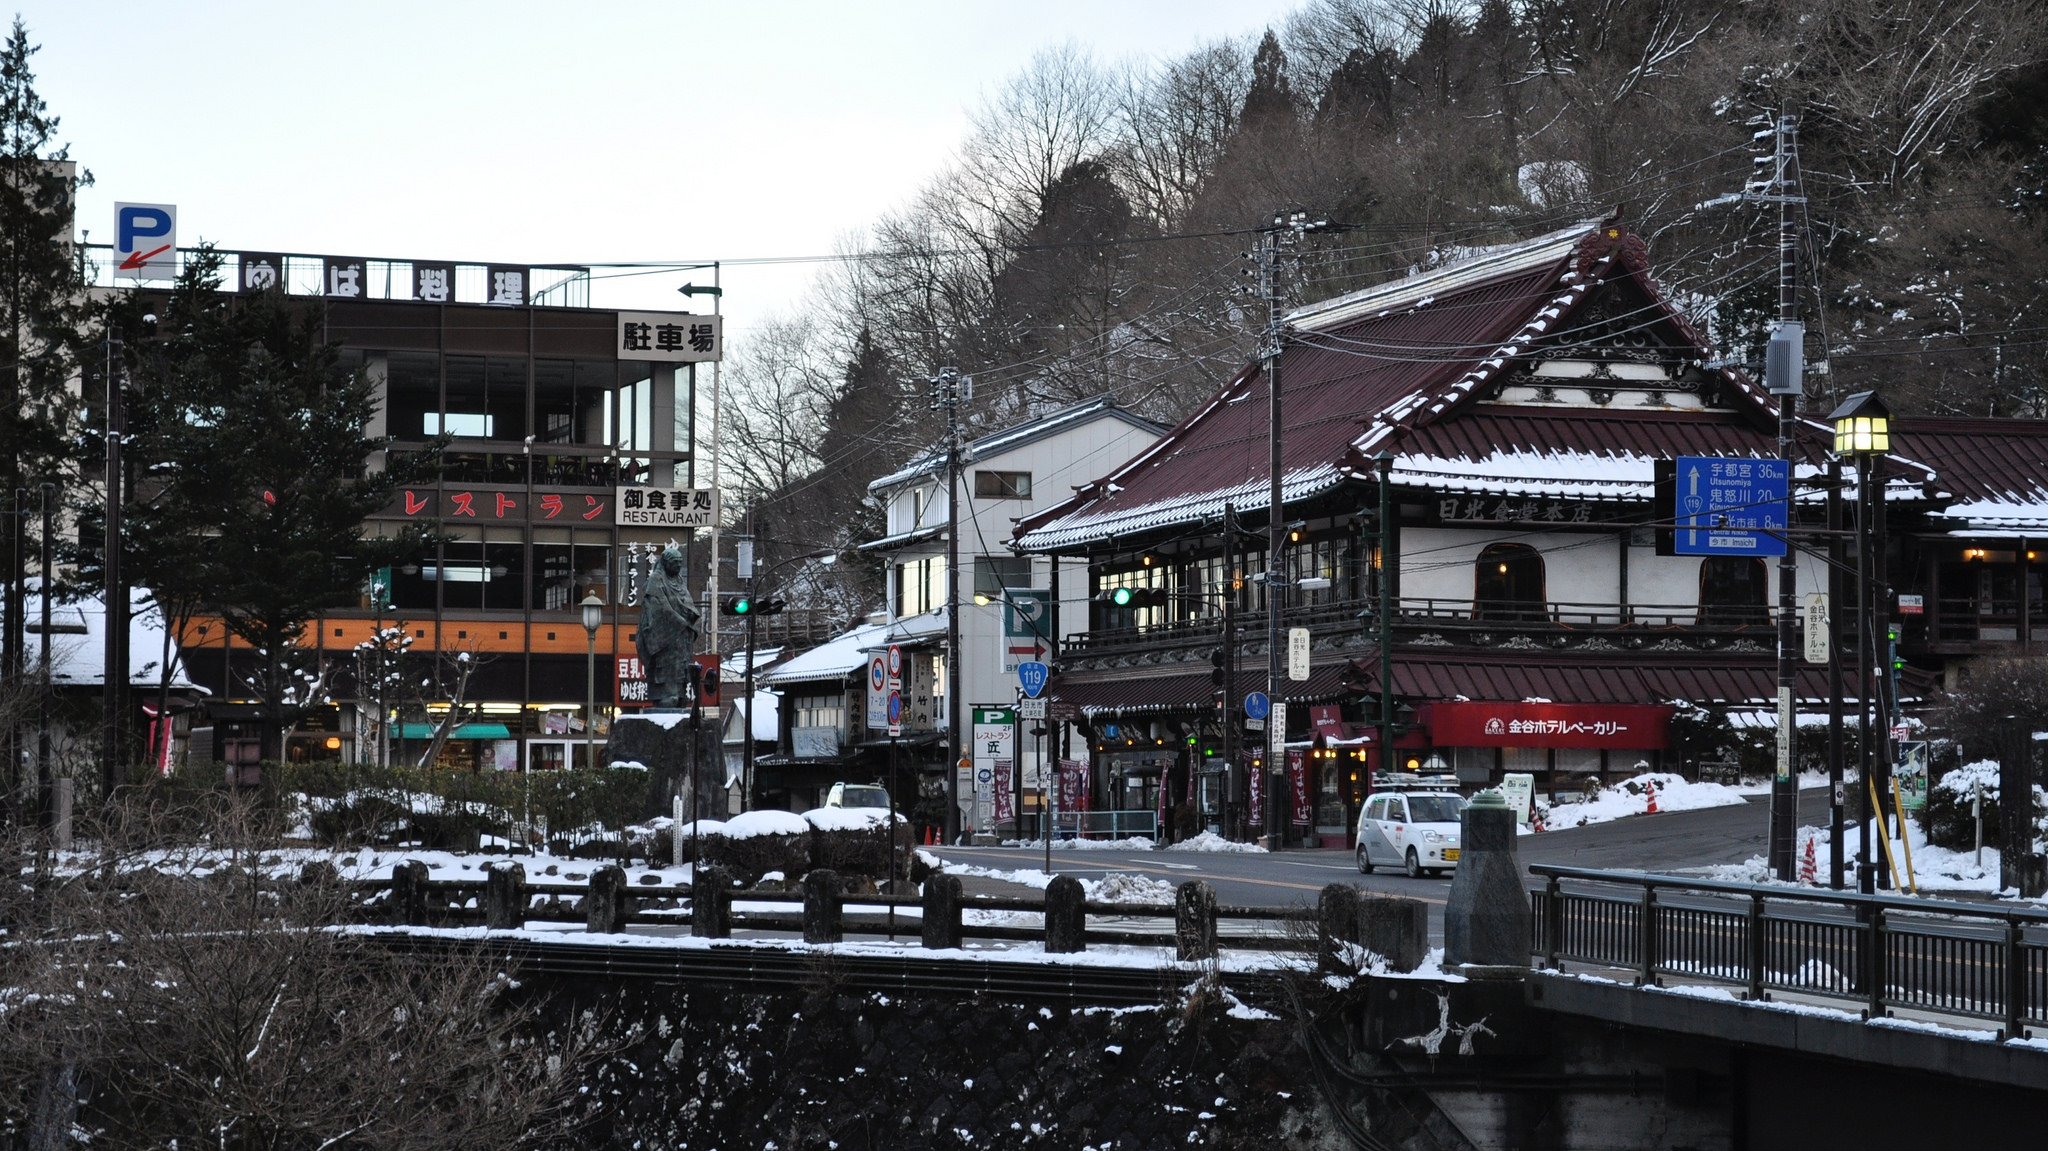 Tochigi - Things to see, things to eat, what to buy